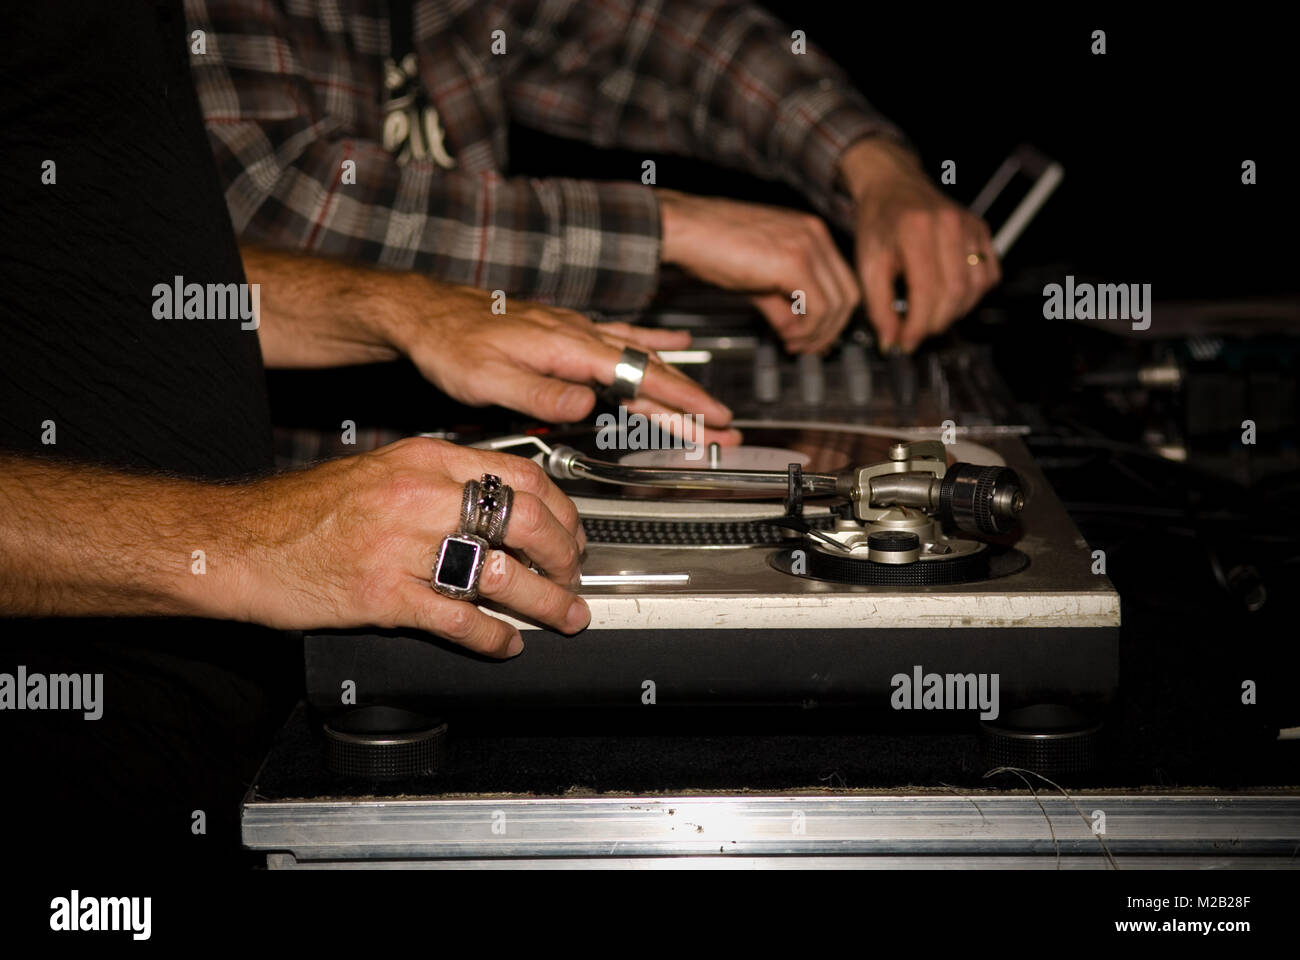 close up of two DJs hands playing vinyls on their record decks at a party in a nightclub - Stock Image